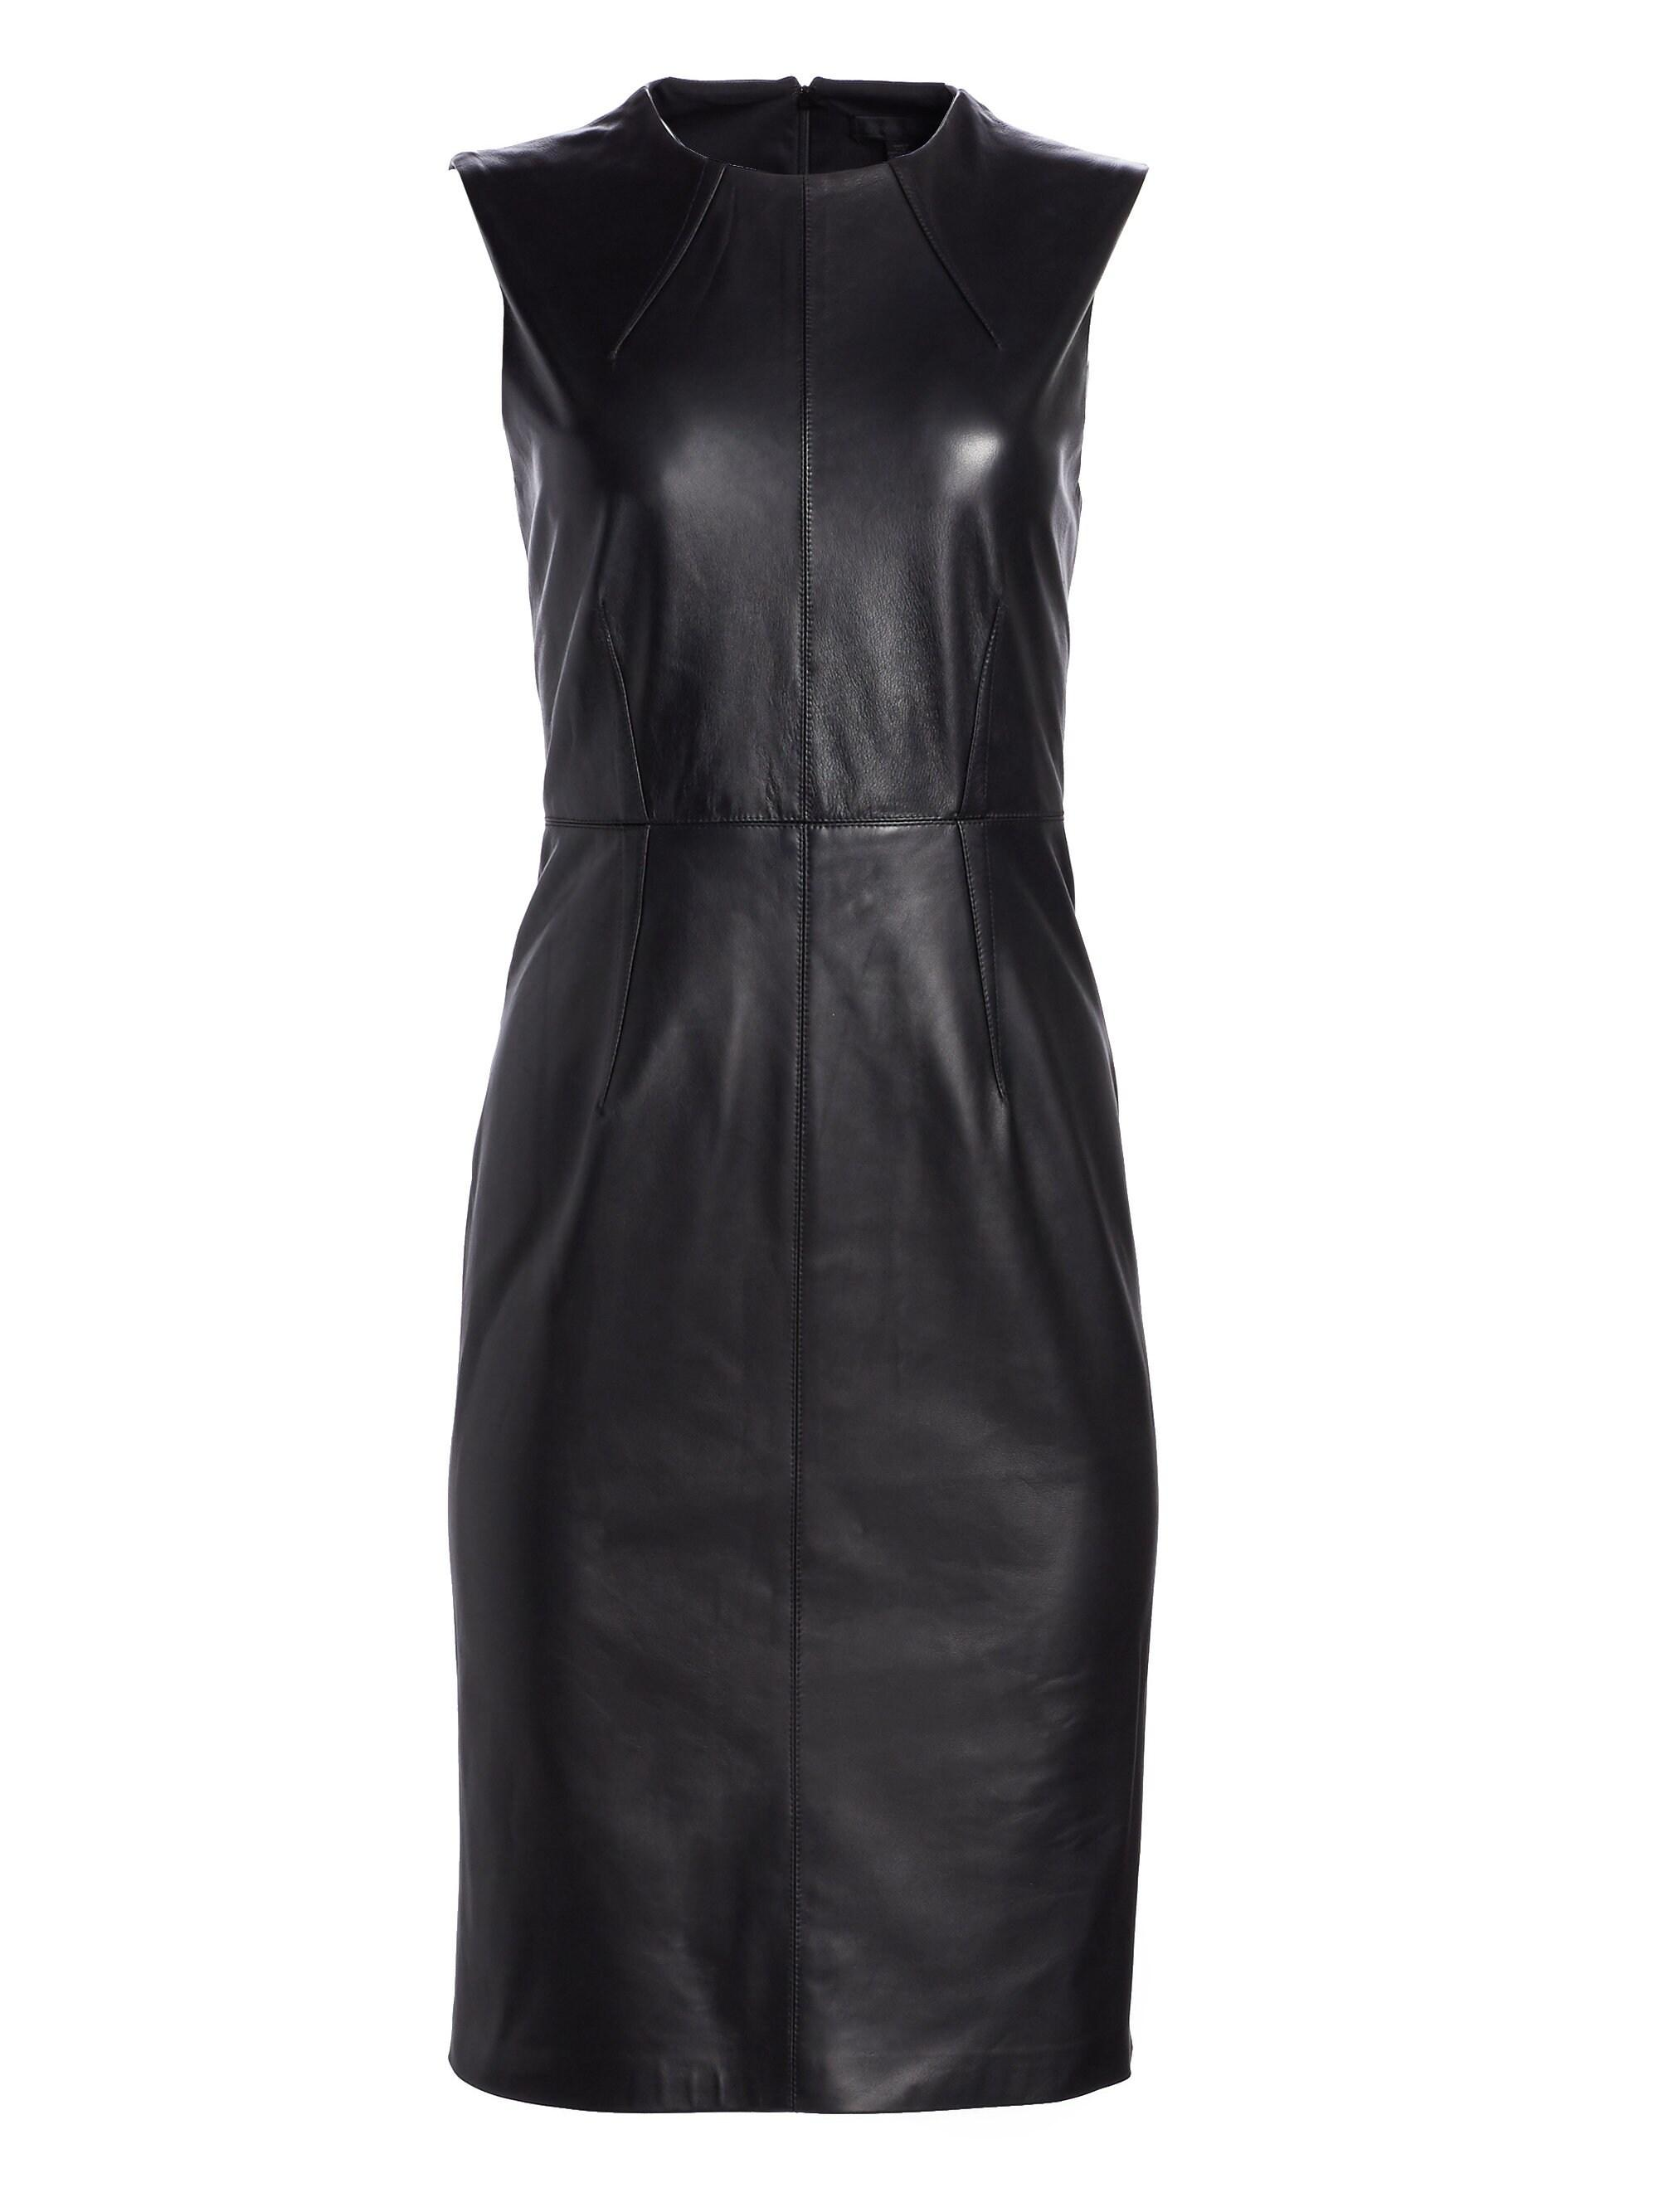 Saks Fifth Avenue Women S Collection Leather Sheath Dress